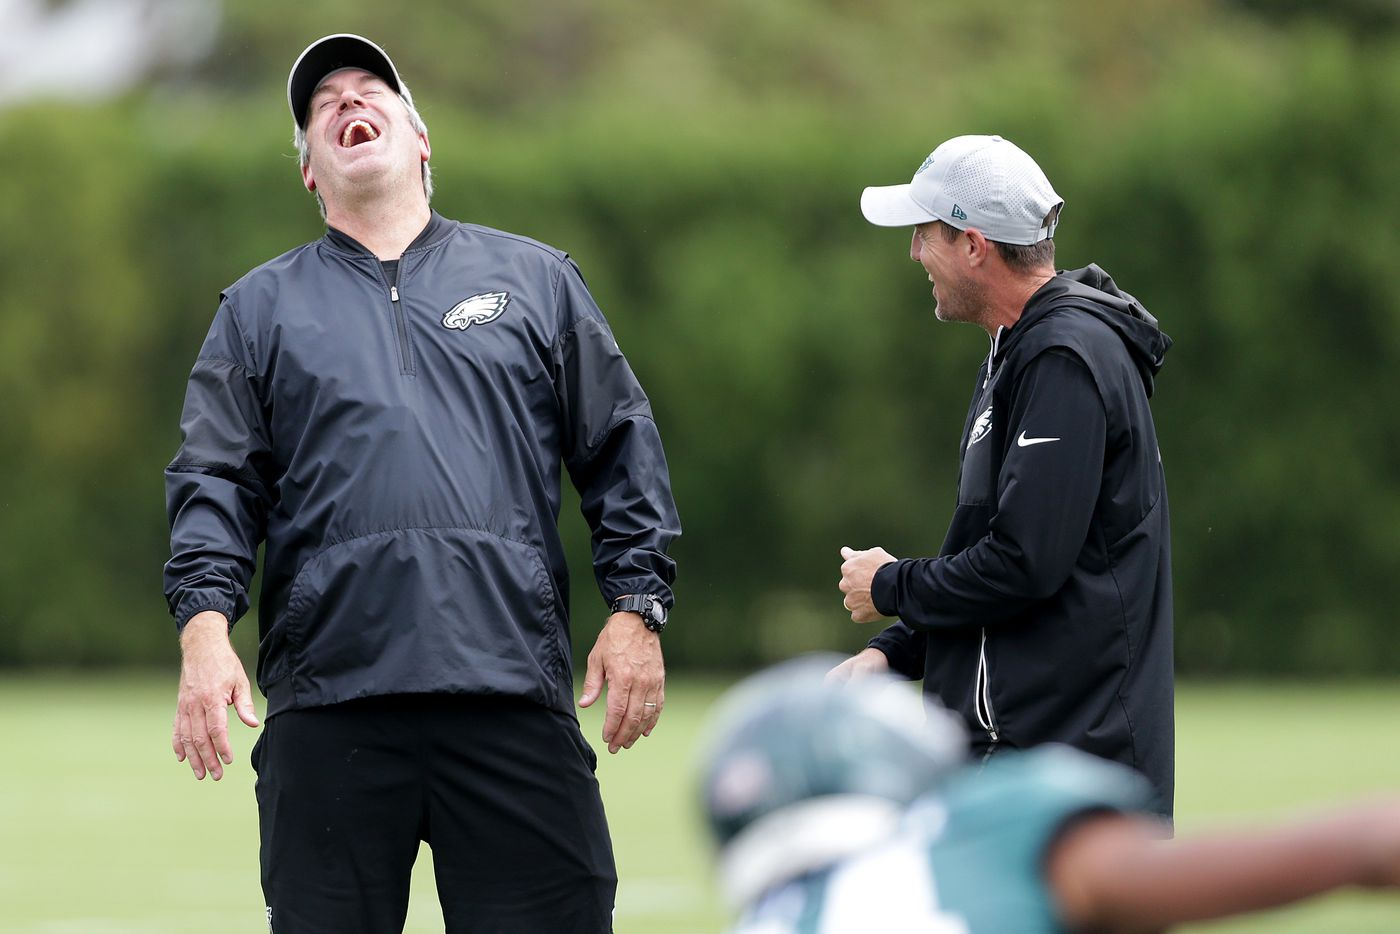 Eagles coach Doug Pederson was right again | Marcus Hayes